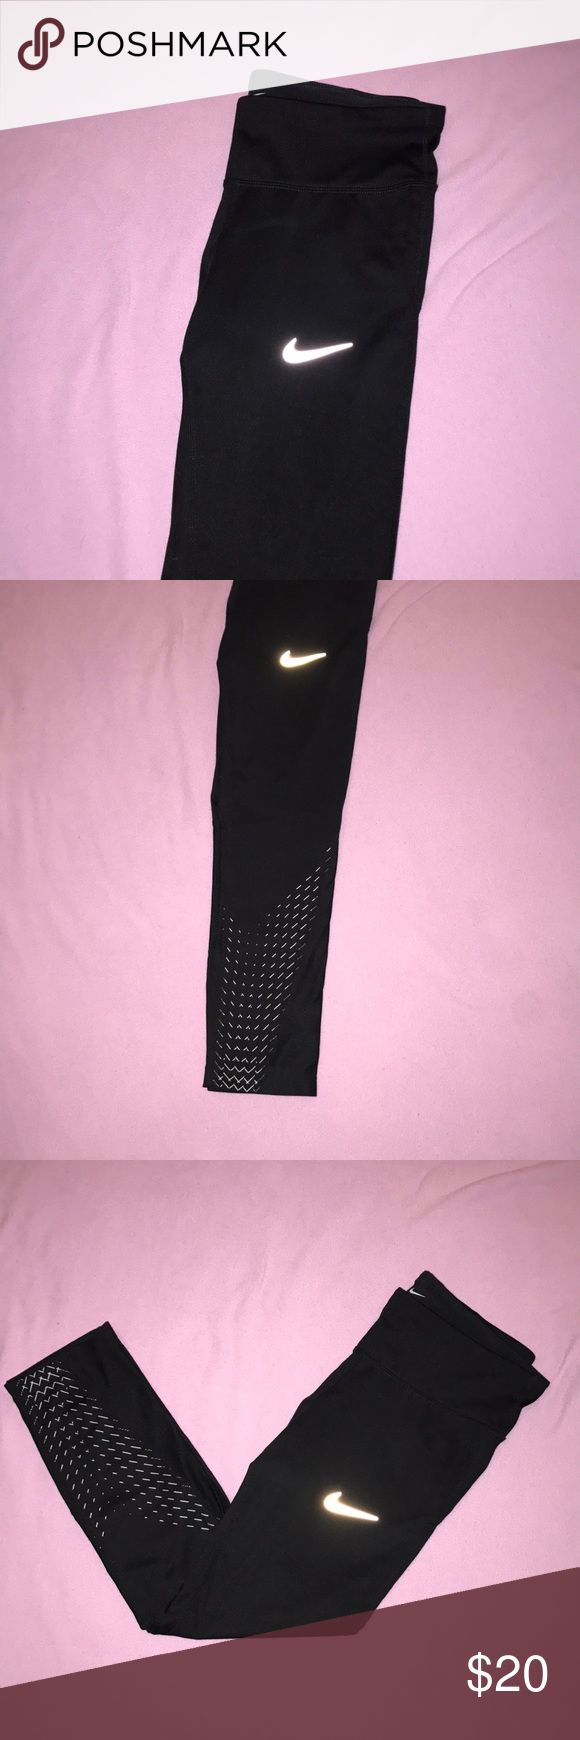 NWOT Nike dri fit spandex capris Nike Never worn Dri fit spandex capris Black with silver reflective design on it No cracks in the reflective material Zipper pocket on the back Drawstring Mesh material on the back of the knees and bottom front of the capris  Size small No flaws  Bundle and save. Prices are always negotiable 💜💙  53 Nike Pants Track Pants & Joggers